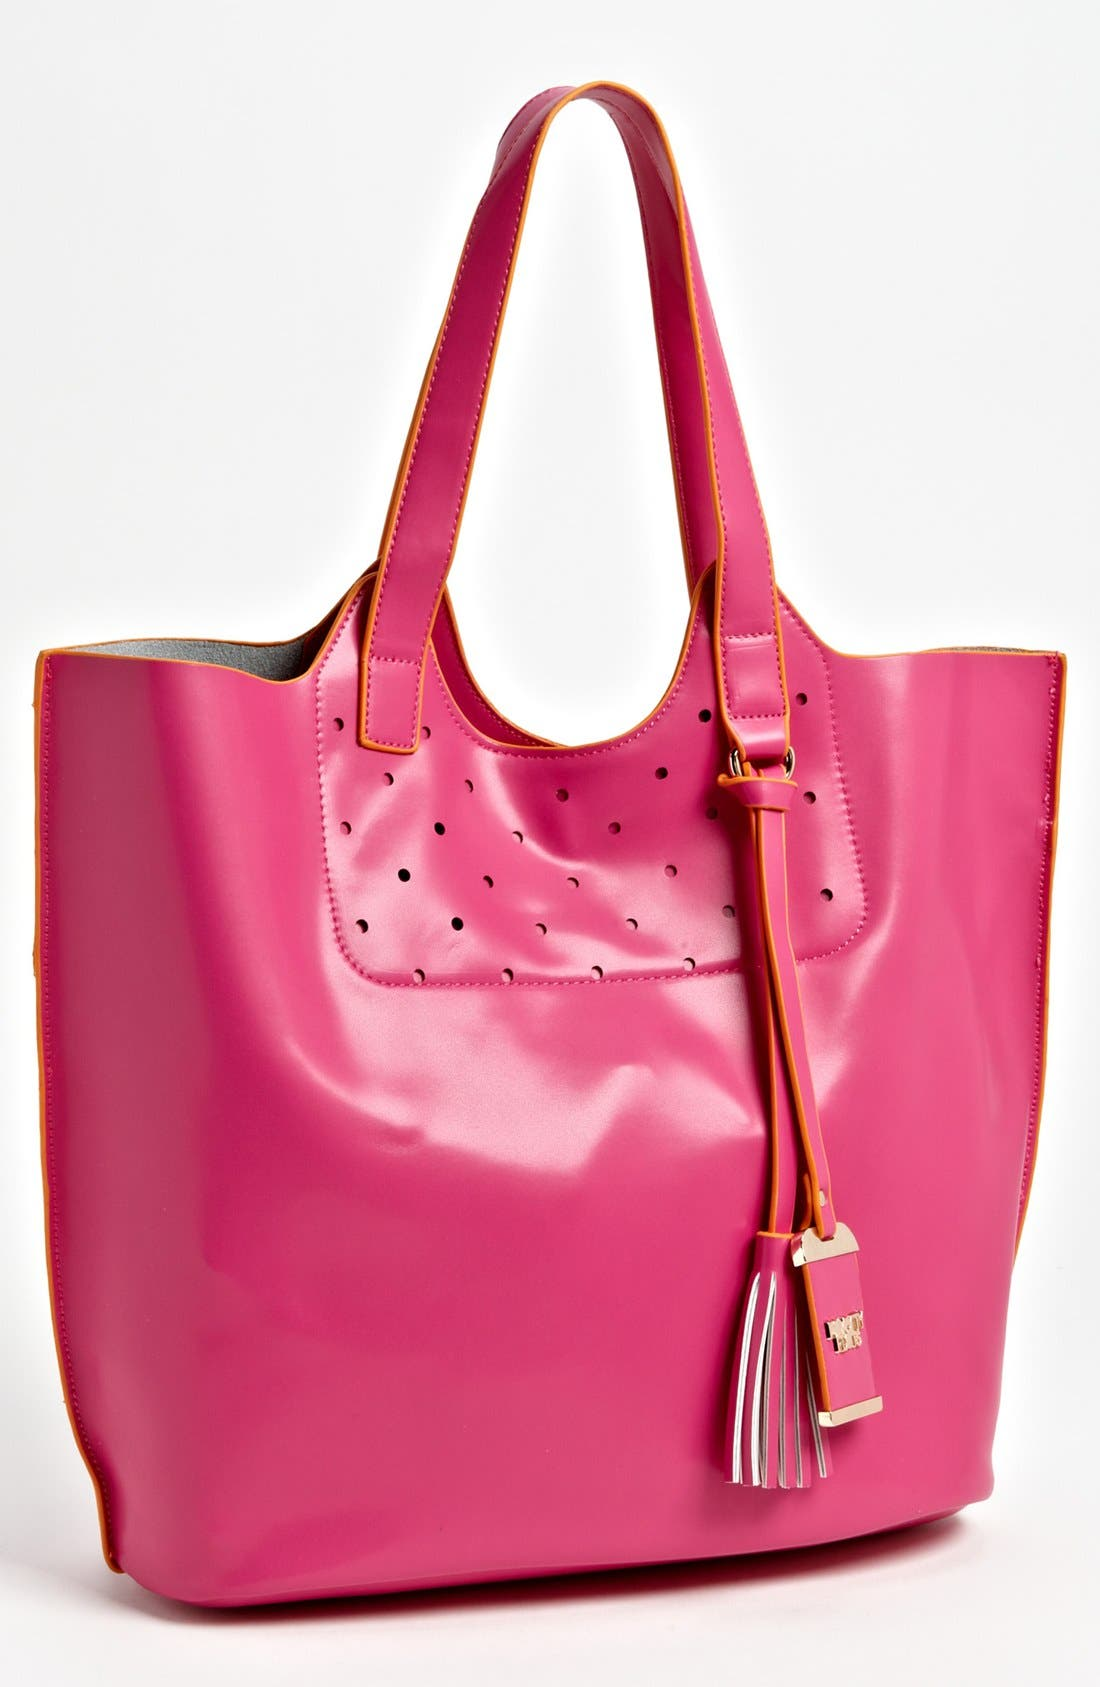 Alternate Image 1 Selected - POVERTY FLATS by rian 'Colorful' Faux Leather Tote